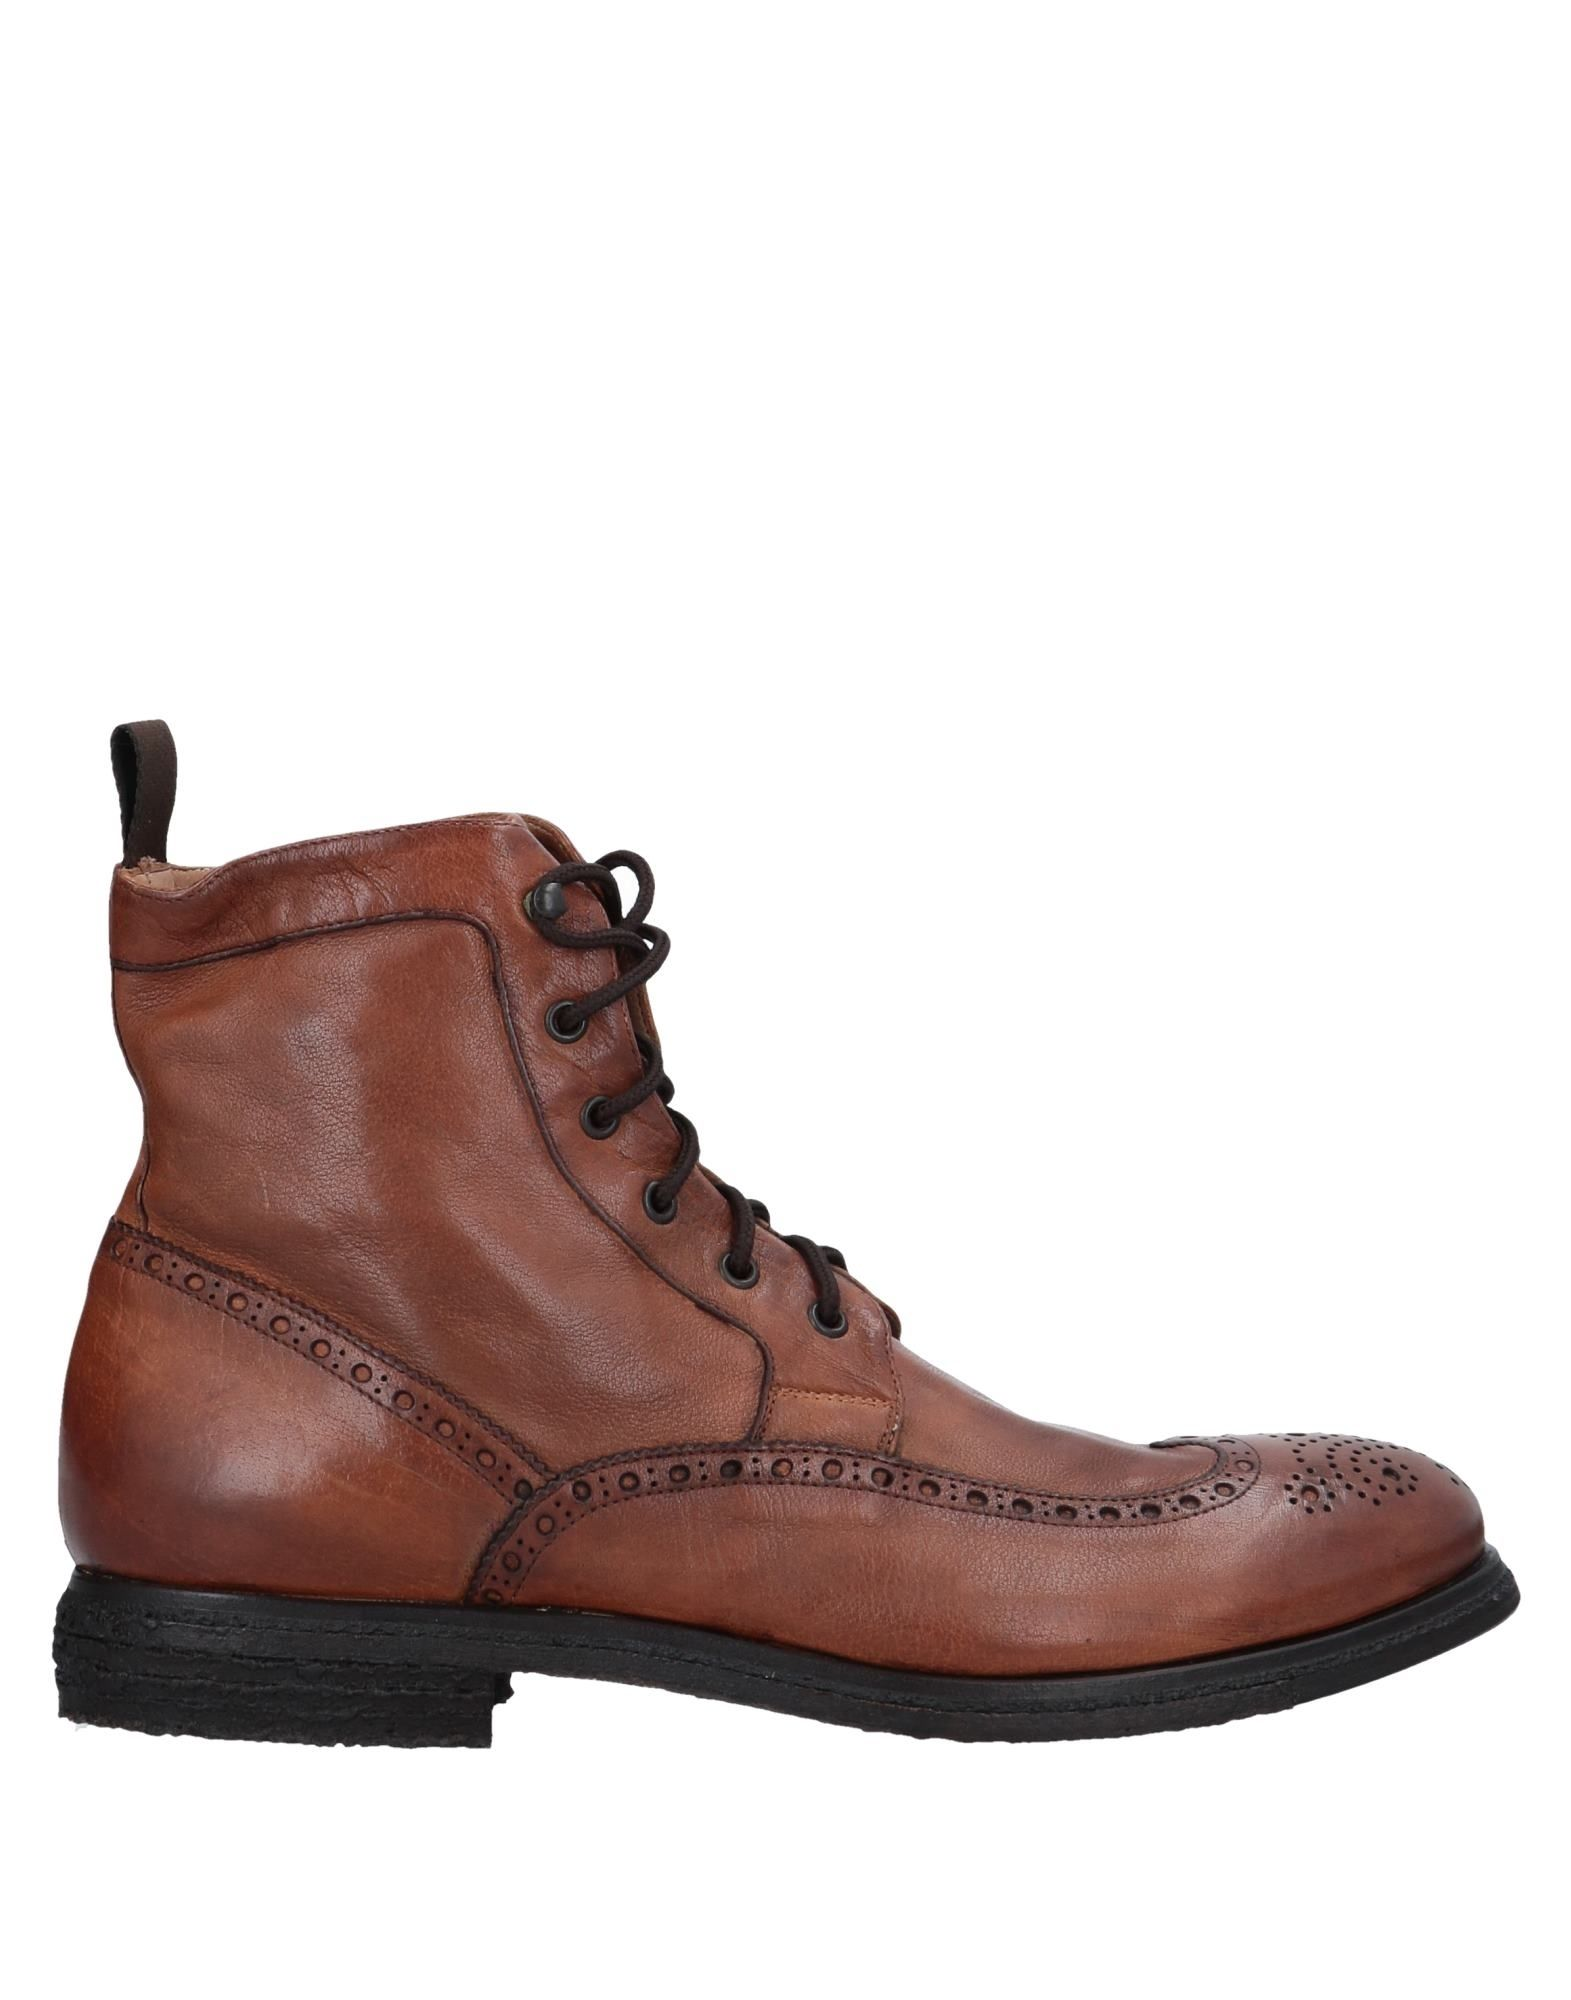 RAPARO Boots in Brown